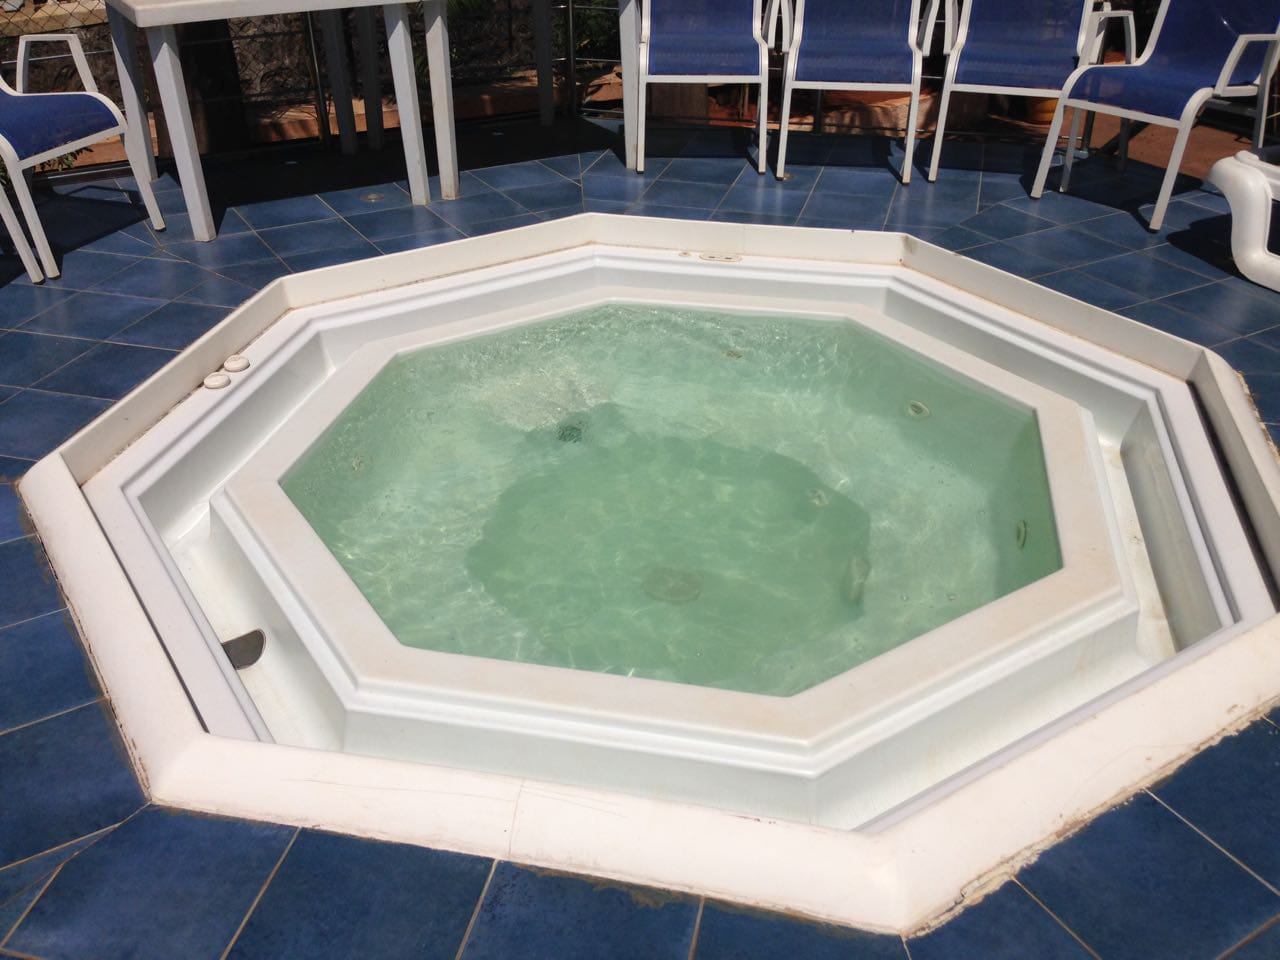 Jacuzzi for your gang